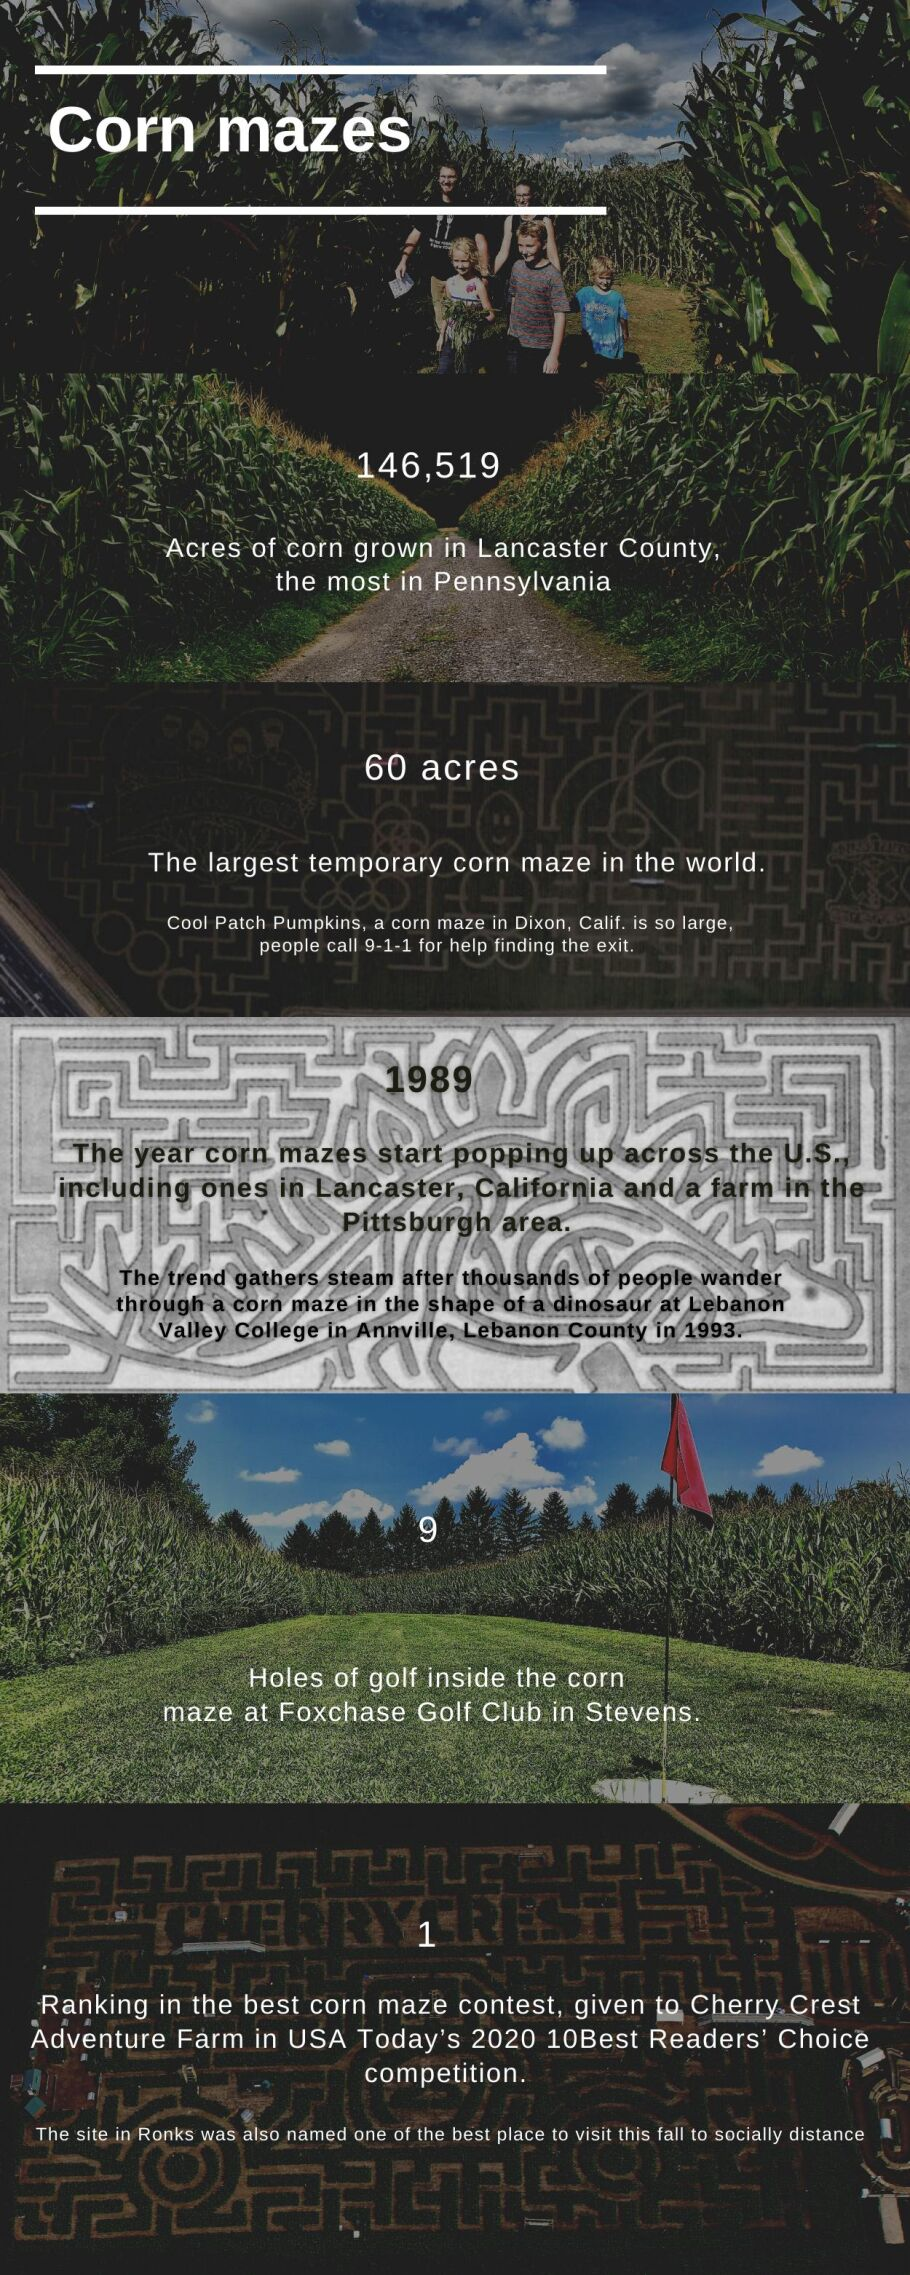 Corn Mazes: By the Numbers